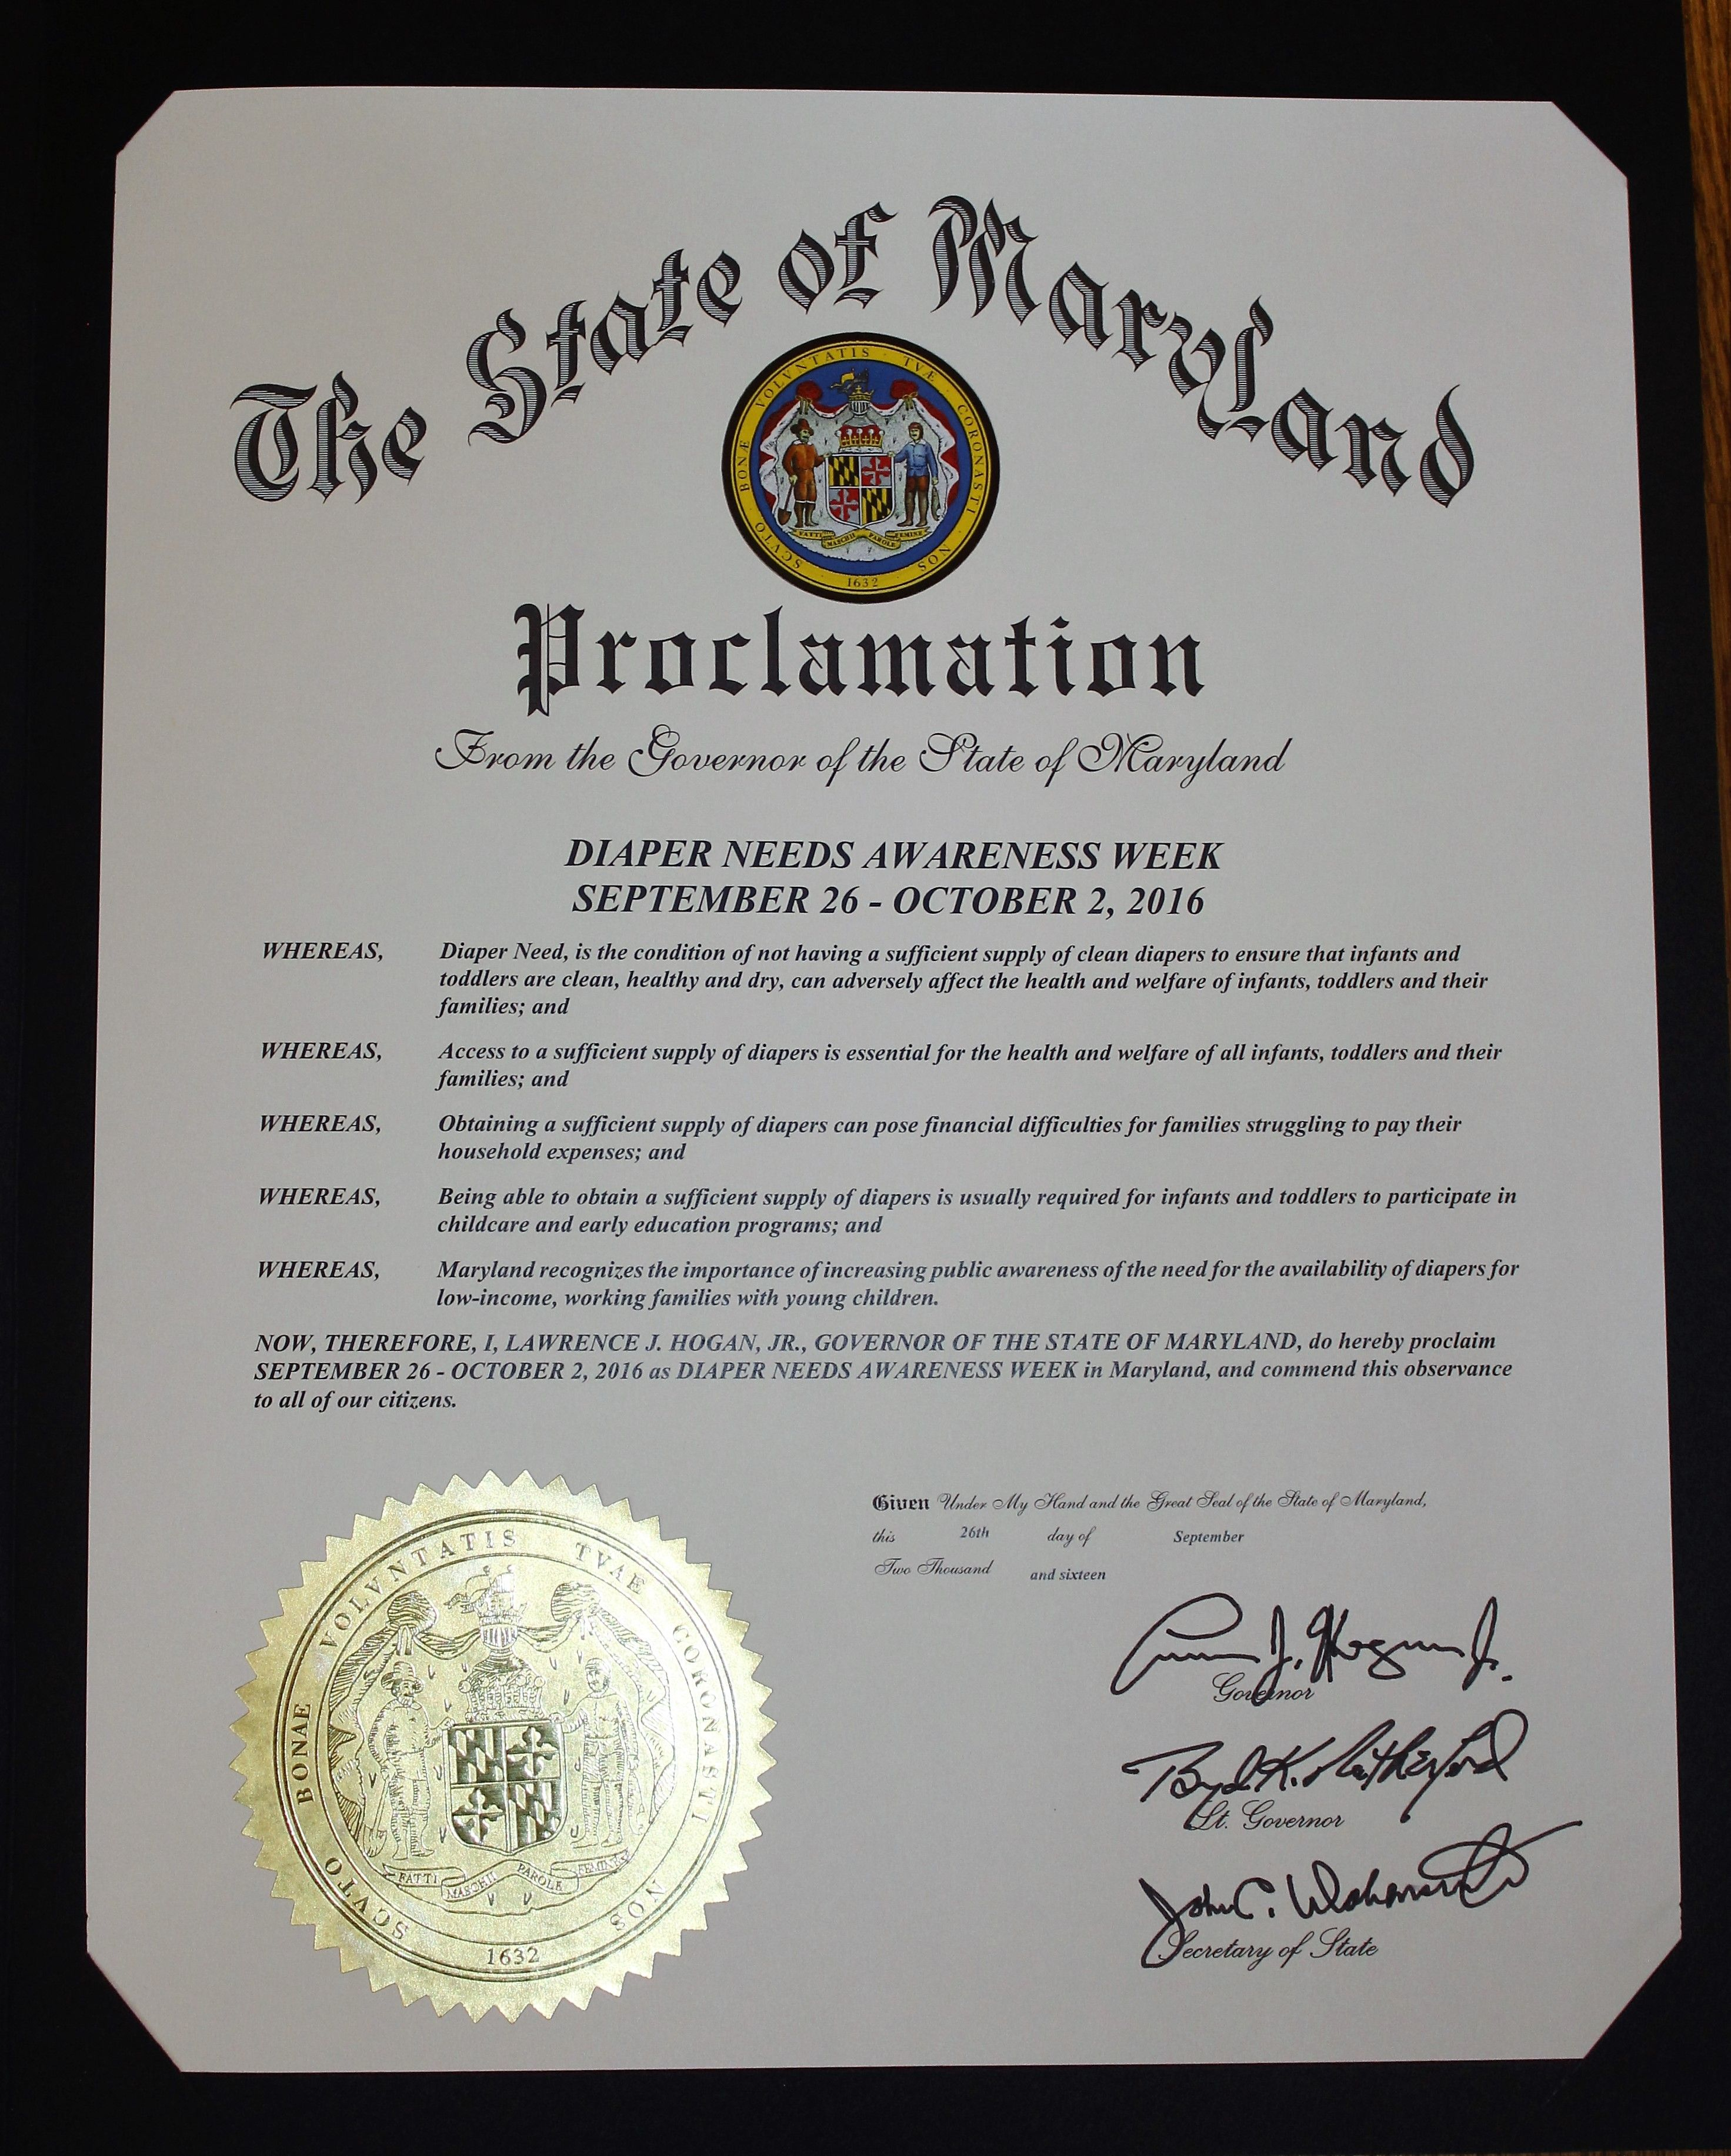 MARYLAND - Governor Lawrenece Hogan, Jr.'s  proclamation recognizing Diaper Need Awareness Week (Sep. 26 - Oct. 2, 2016) #diaperneed diapered.org